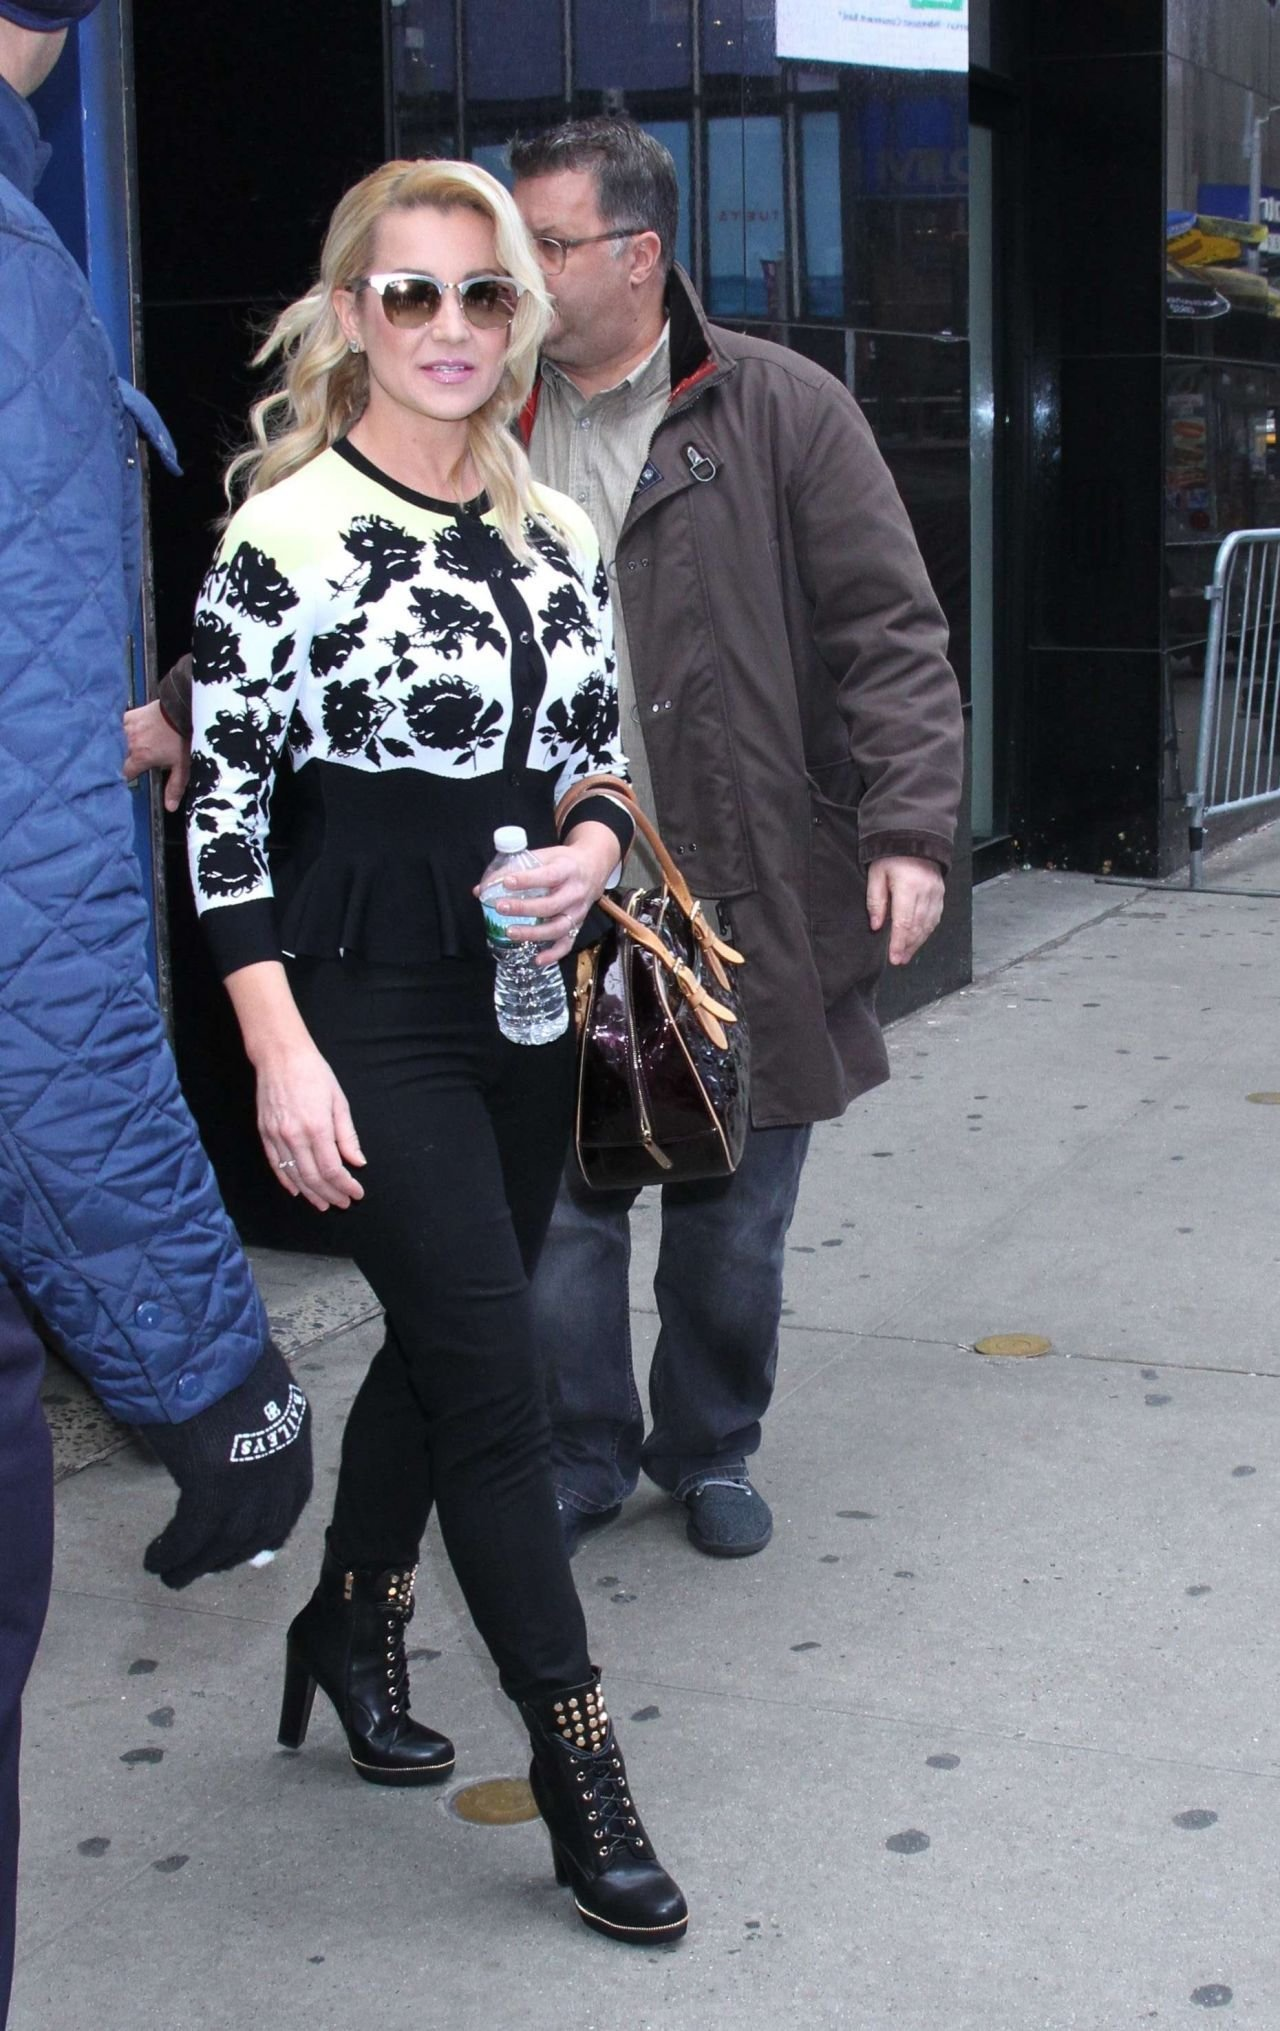 The Best Kellie Pickler Is Stylish Leaving Gma In Nyc 01 10 2019 Pictures